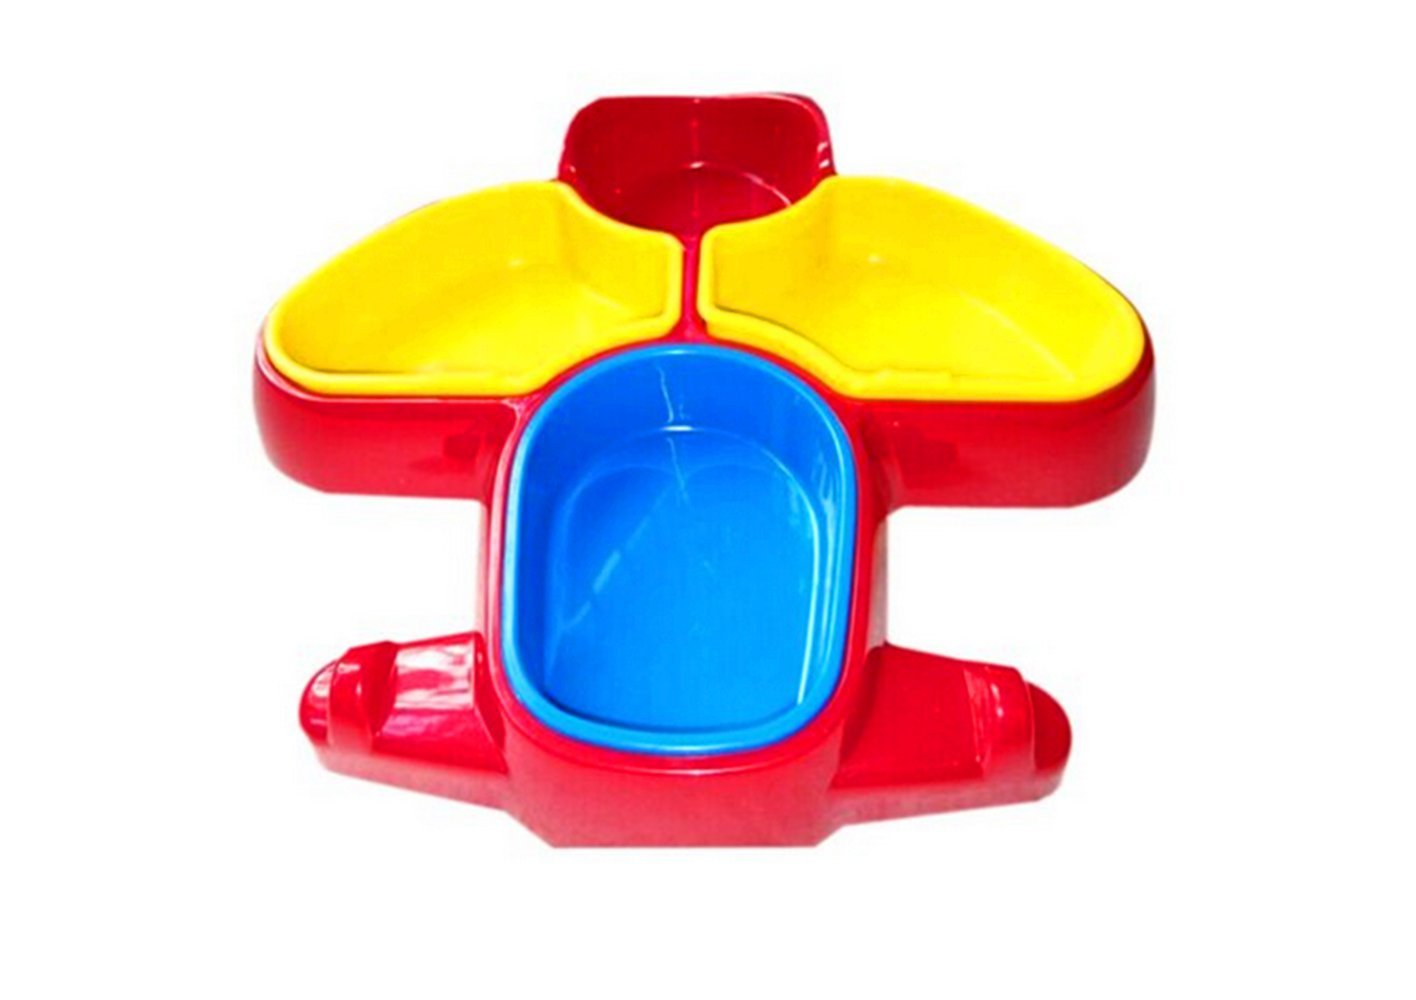 Kangkang@ High Quality Unbreak Colorful Airplane Shaped Healthy Baby Dinnerware Baby Infant Children Aircraft Snack Bowl/cup/box/plate by Kangkang